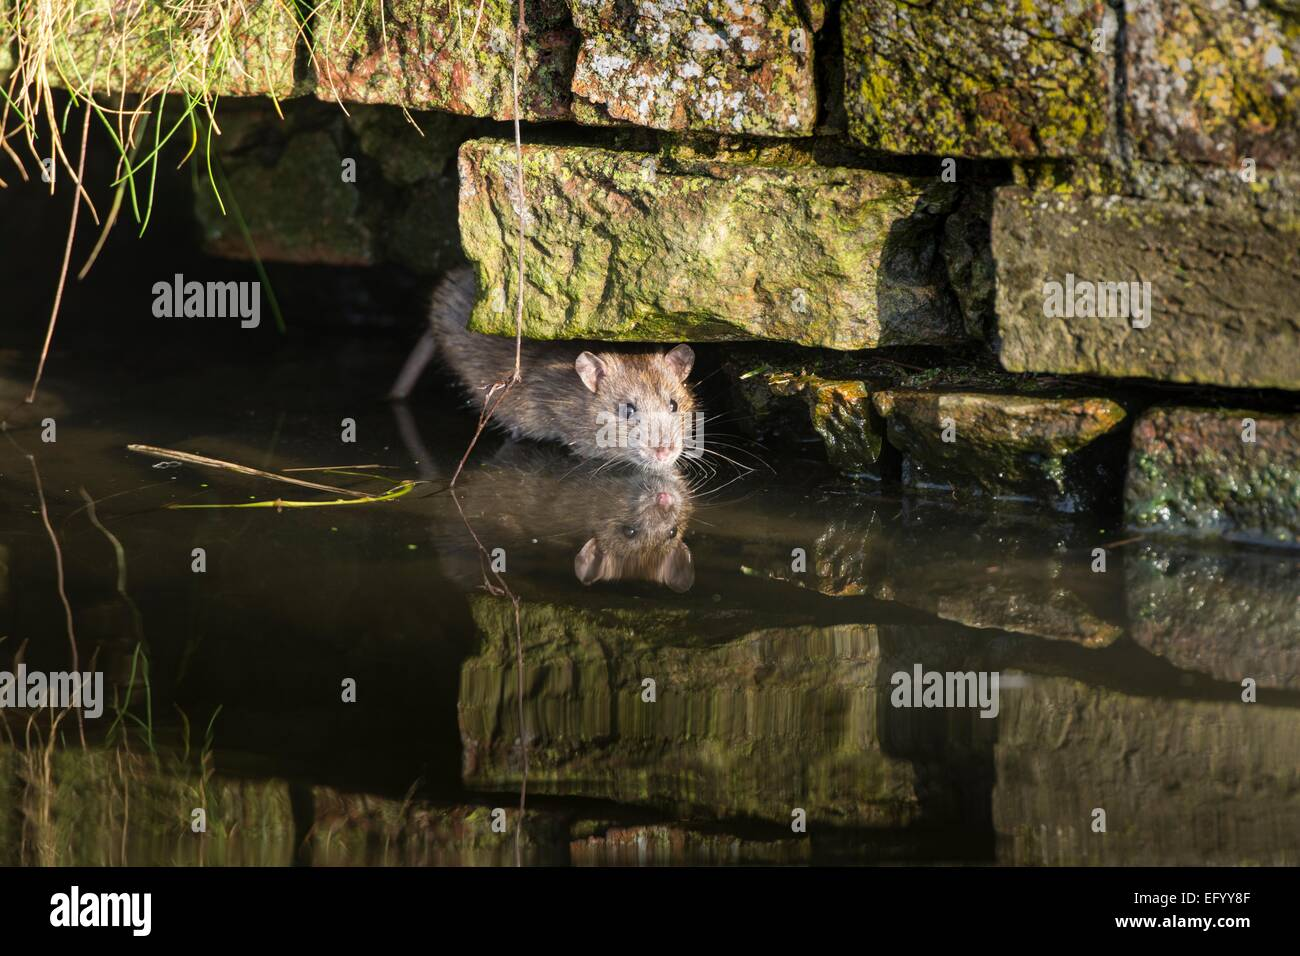 Brown Rat in old sewer - Stock Image